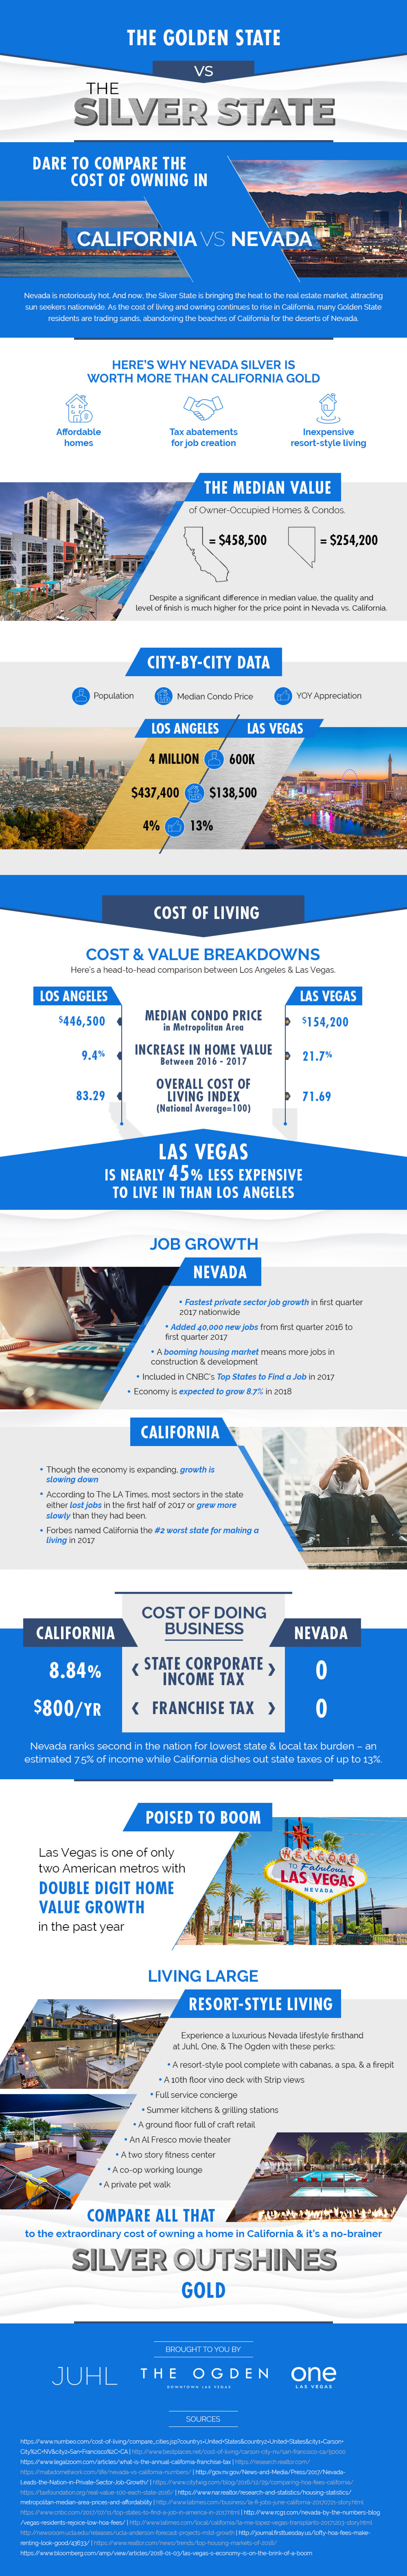 Silver vs Gold: Comparing Home Prices and The Cost of Living in Nevada to California [Infographic] Infographic